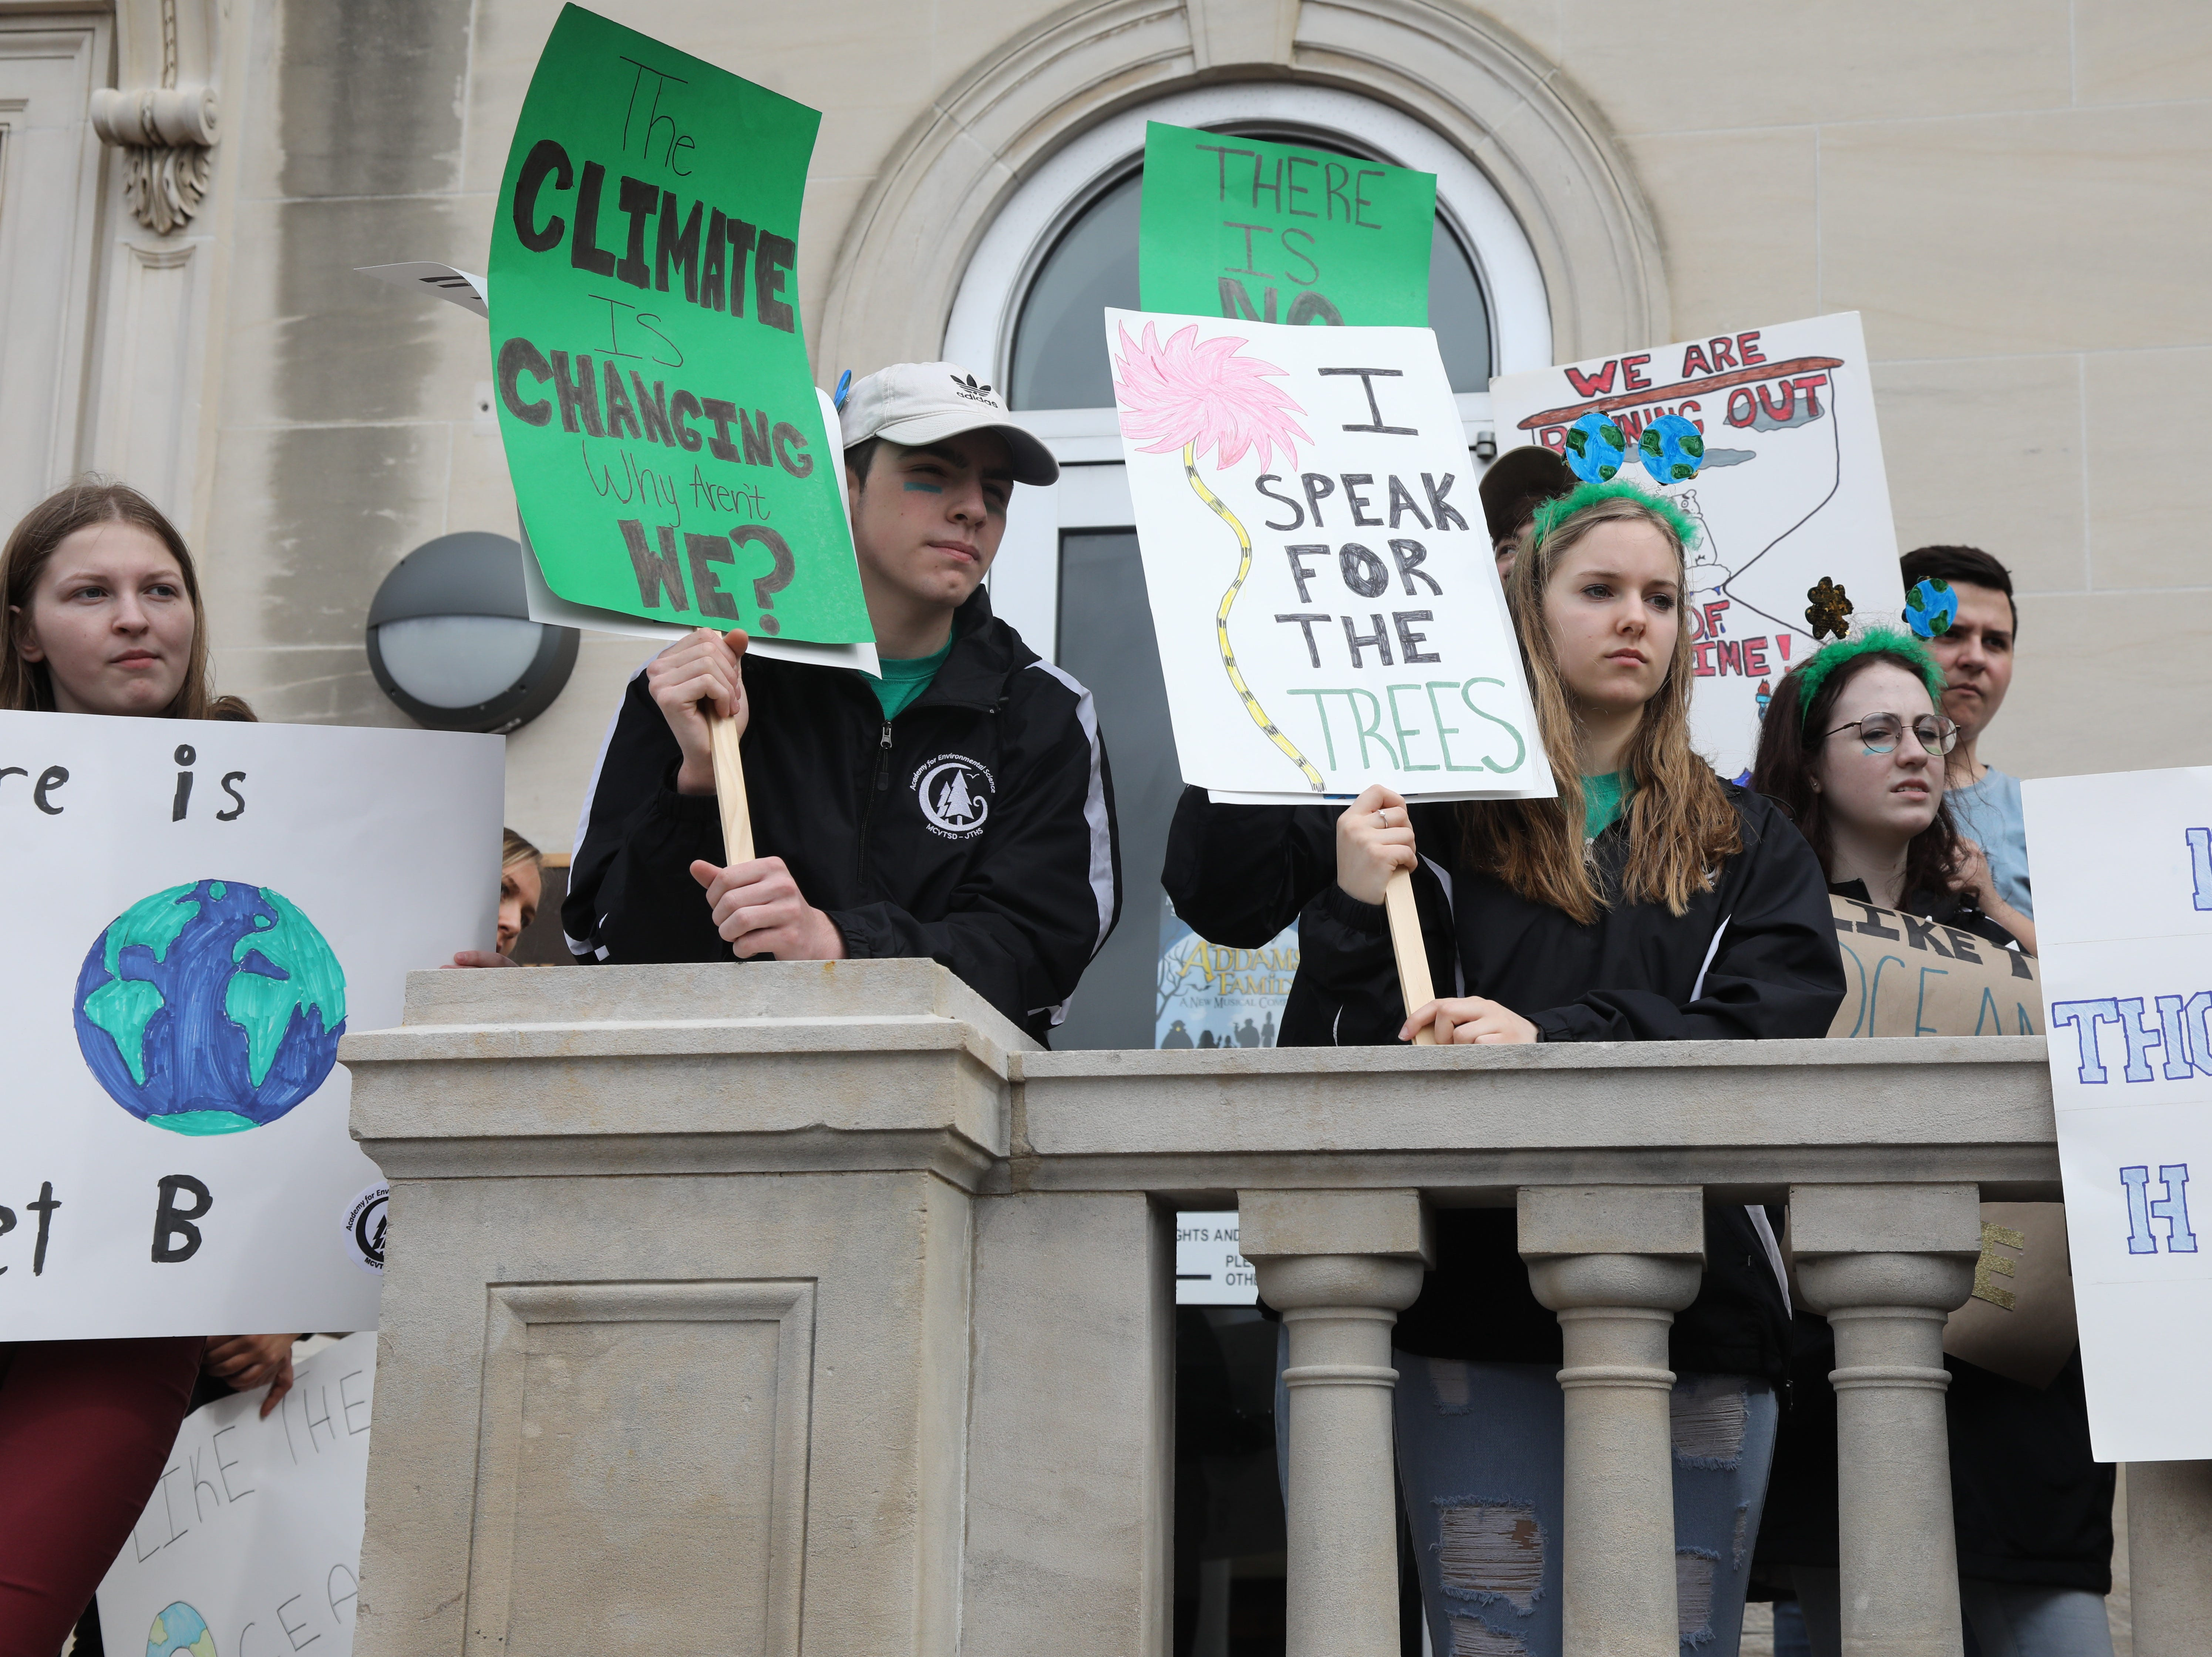 Groups of students on the steps of the Morristown Municipal Building on March 15, 2019 to express their demands to address climate change.